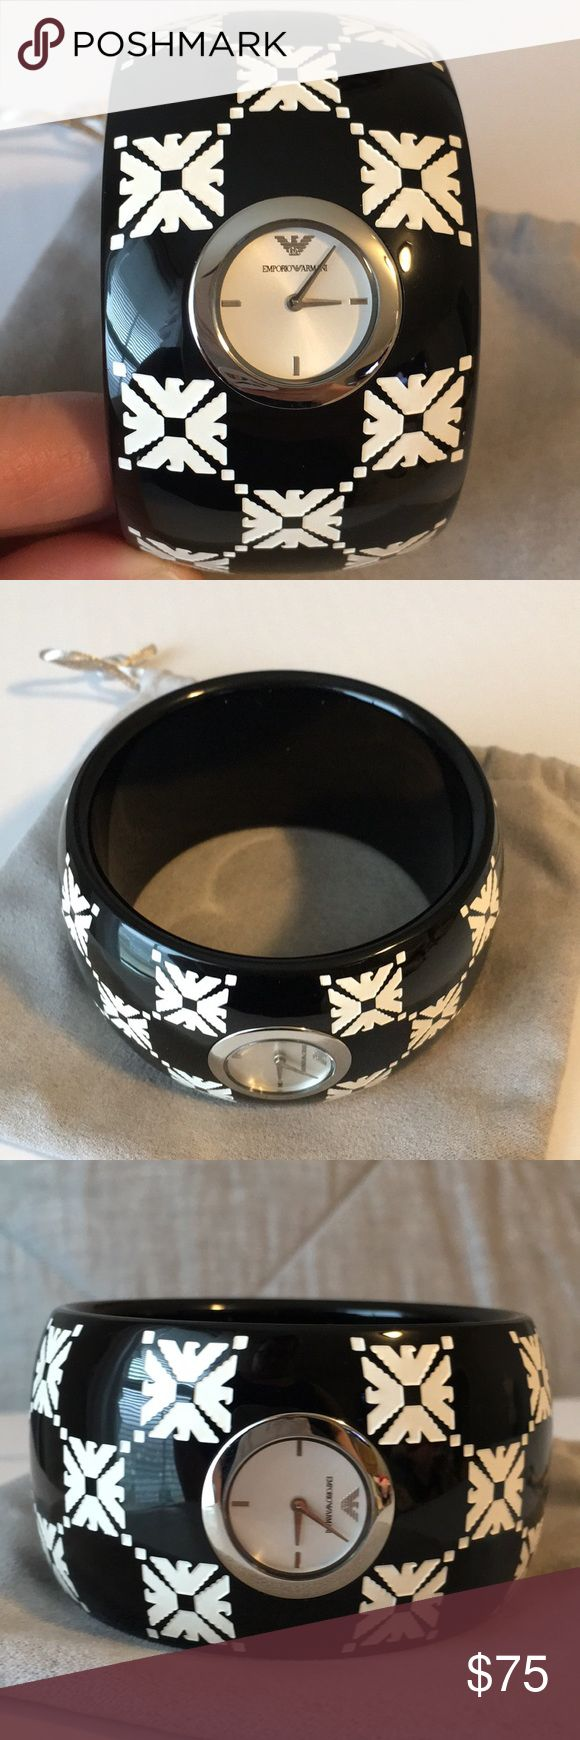 Emporio Armani  Watch Emporio Armani black and white bangle watch. NWOT, needs new battery Emporio Armani Accessories Watches